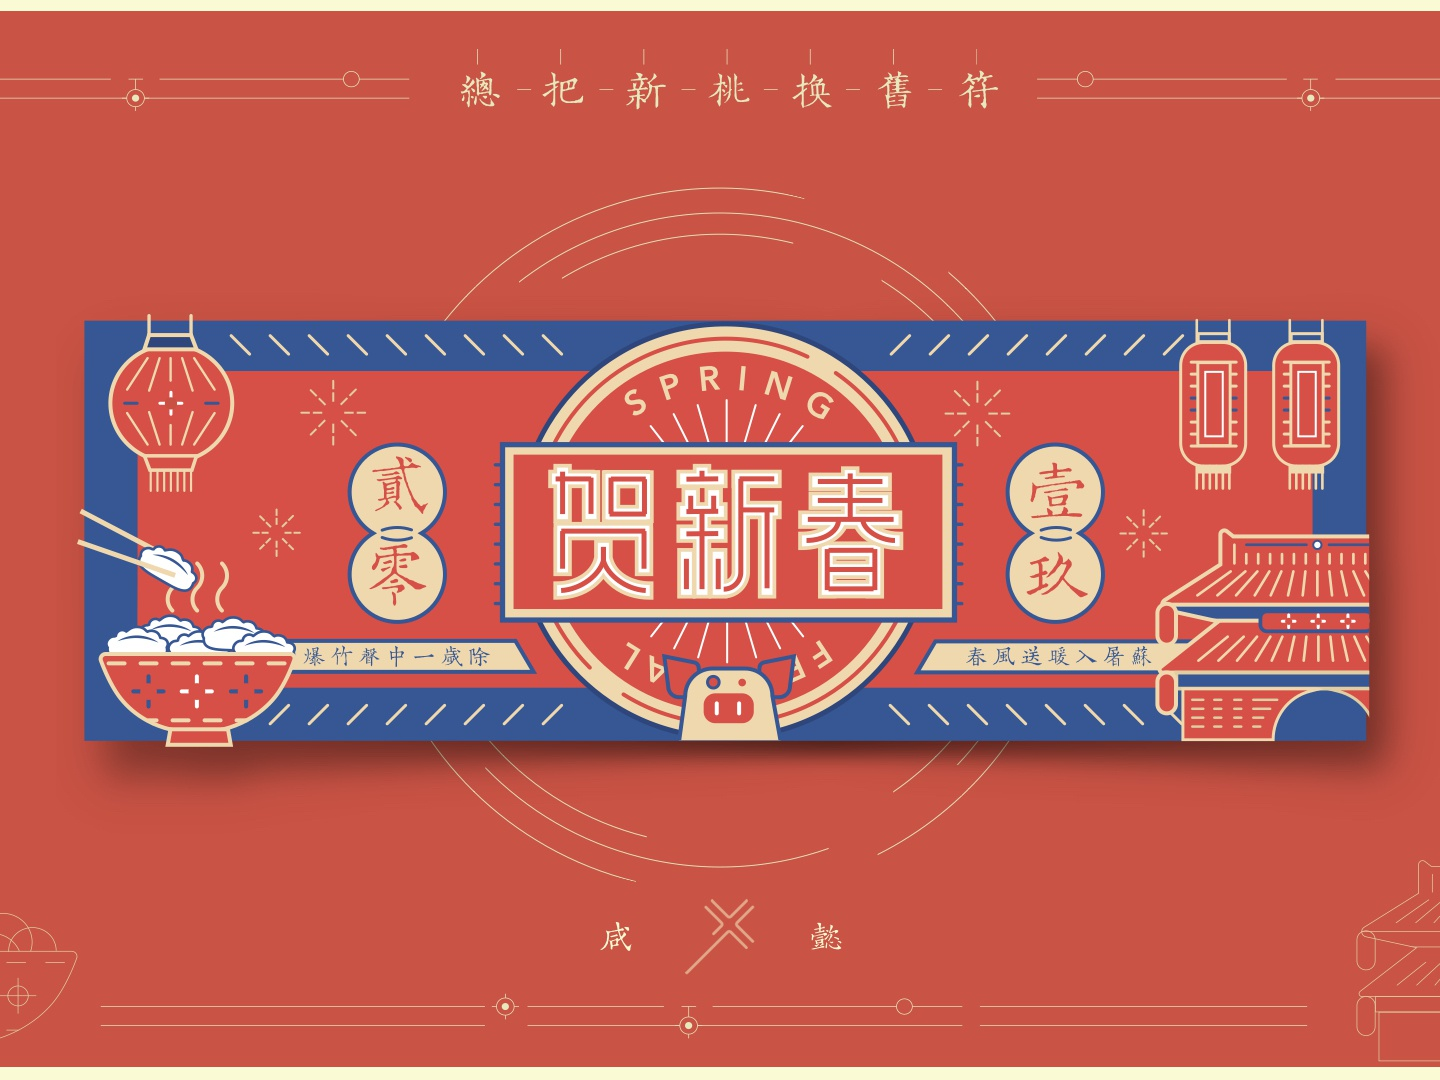 Happy Chinese new year!Here is Chinese style~~XD spring festival type animation festival newyear spring website culture china web ux logo design app ui 平面 illustration icon branding